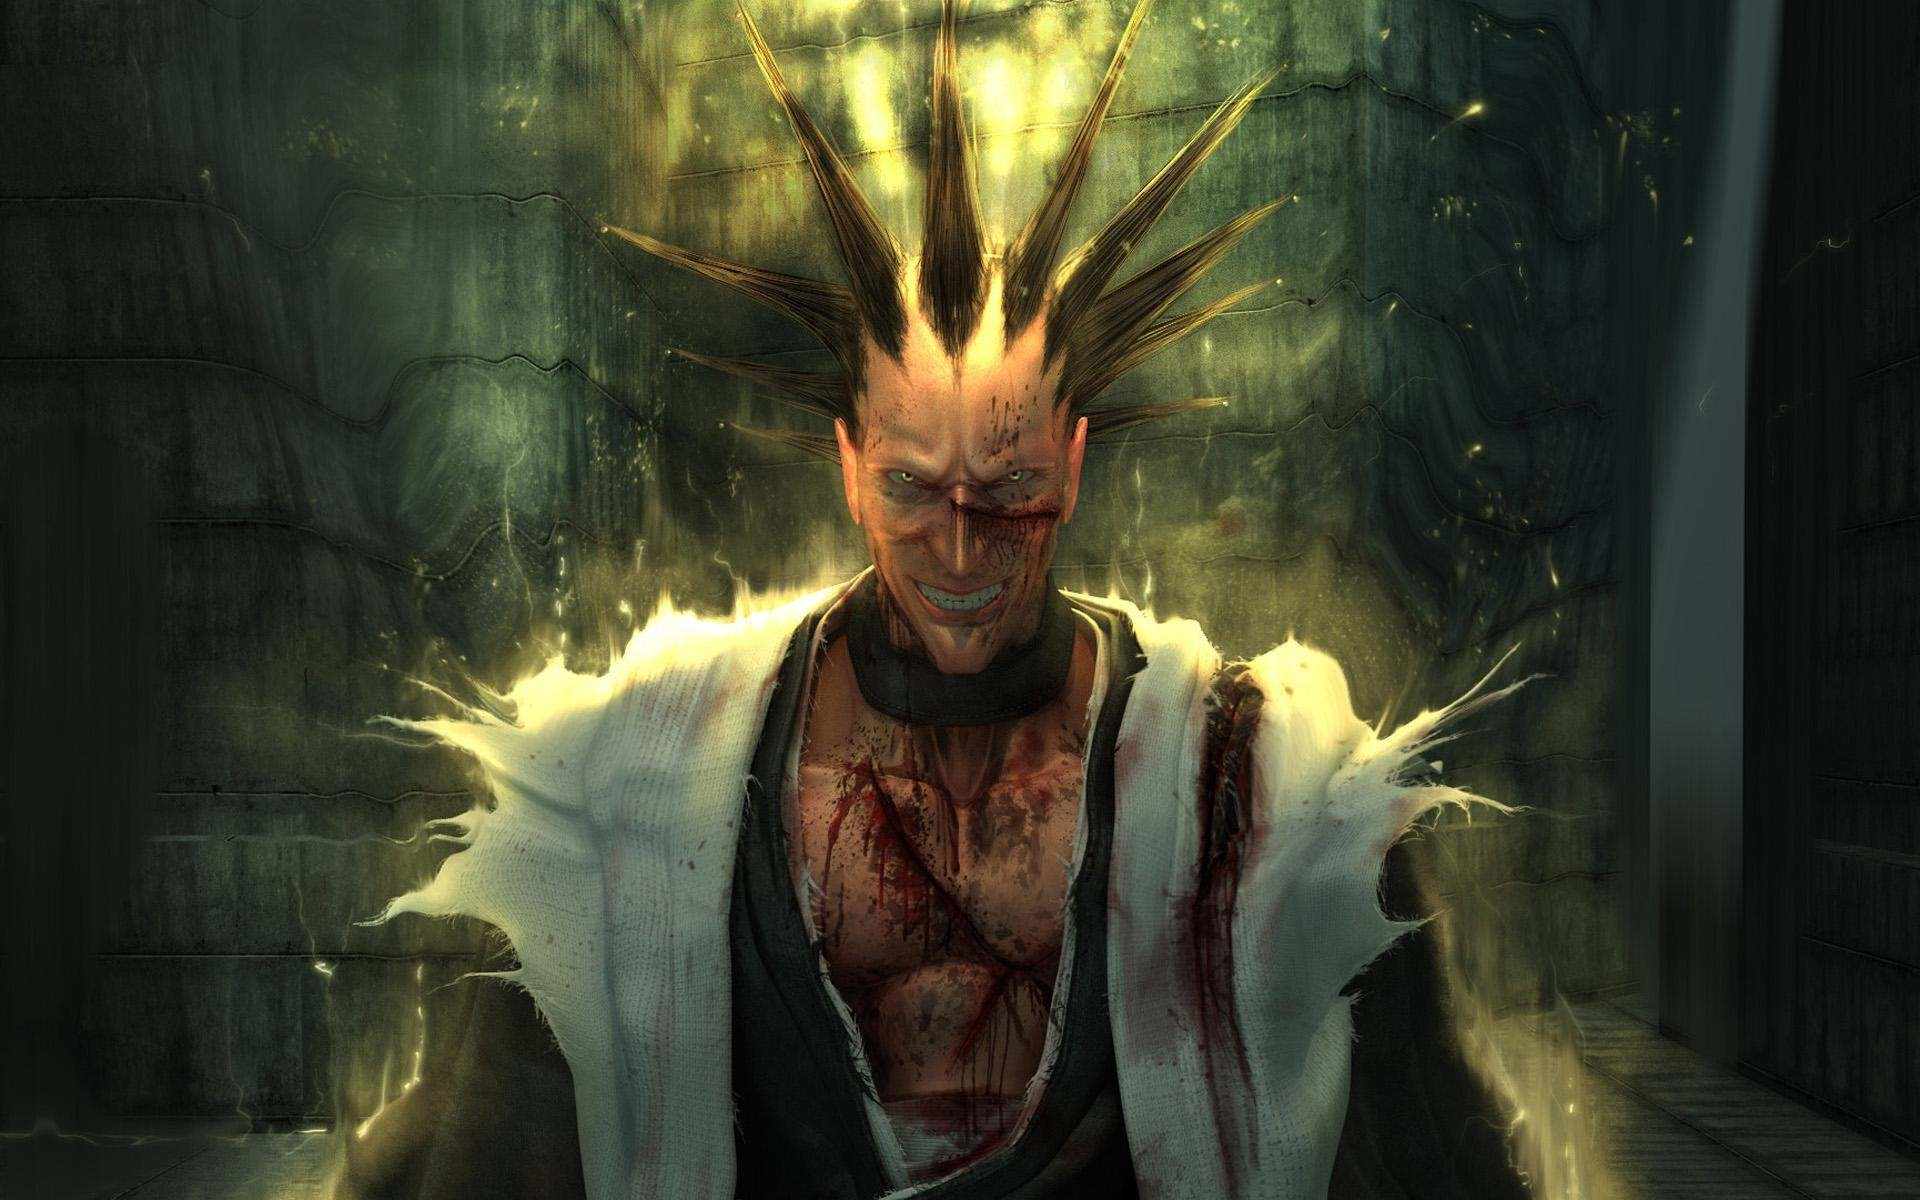 1920x1200 Zaraki Kenpachi HD Wallpapers - HD Wallpapers Inn